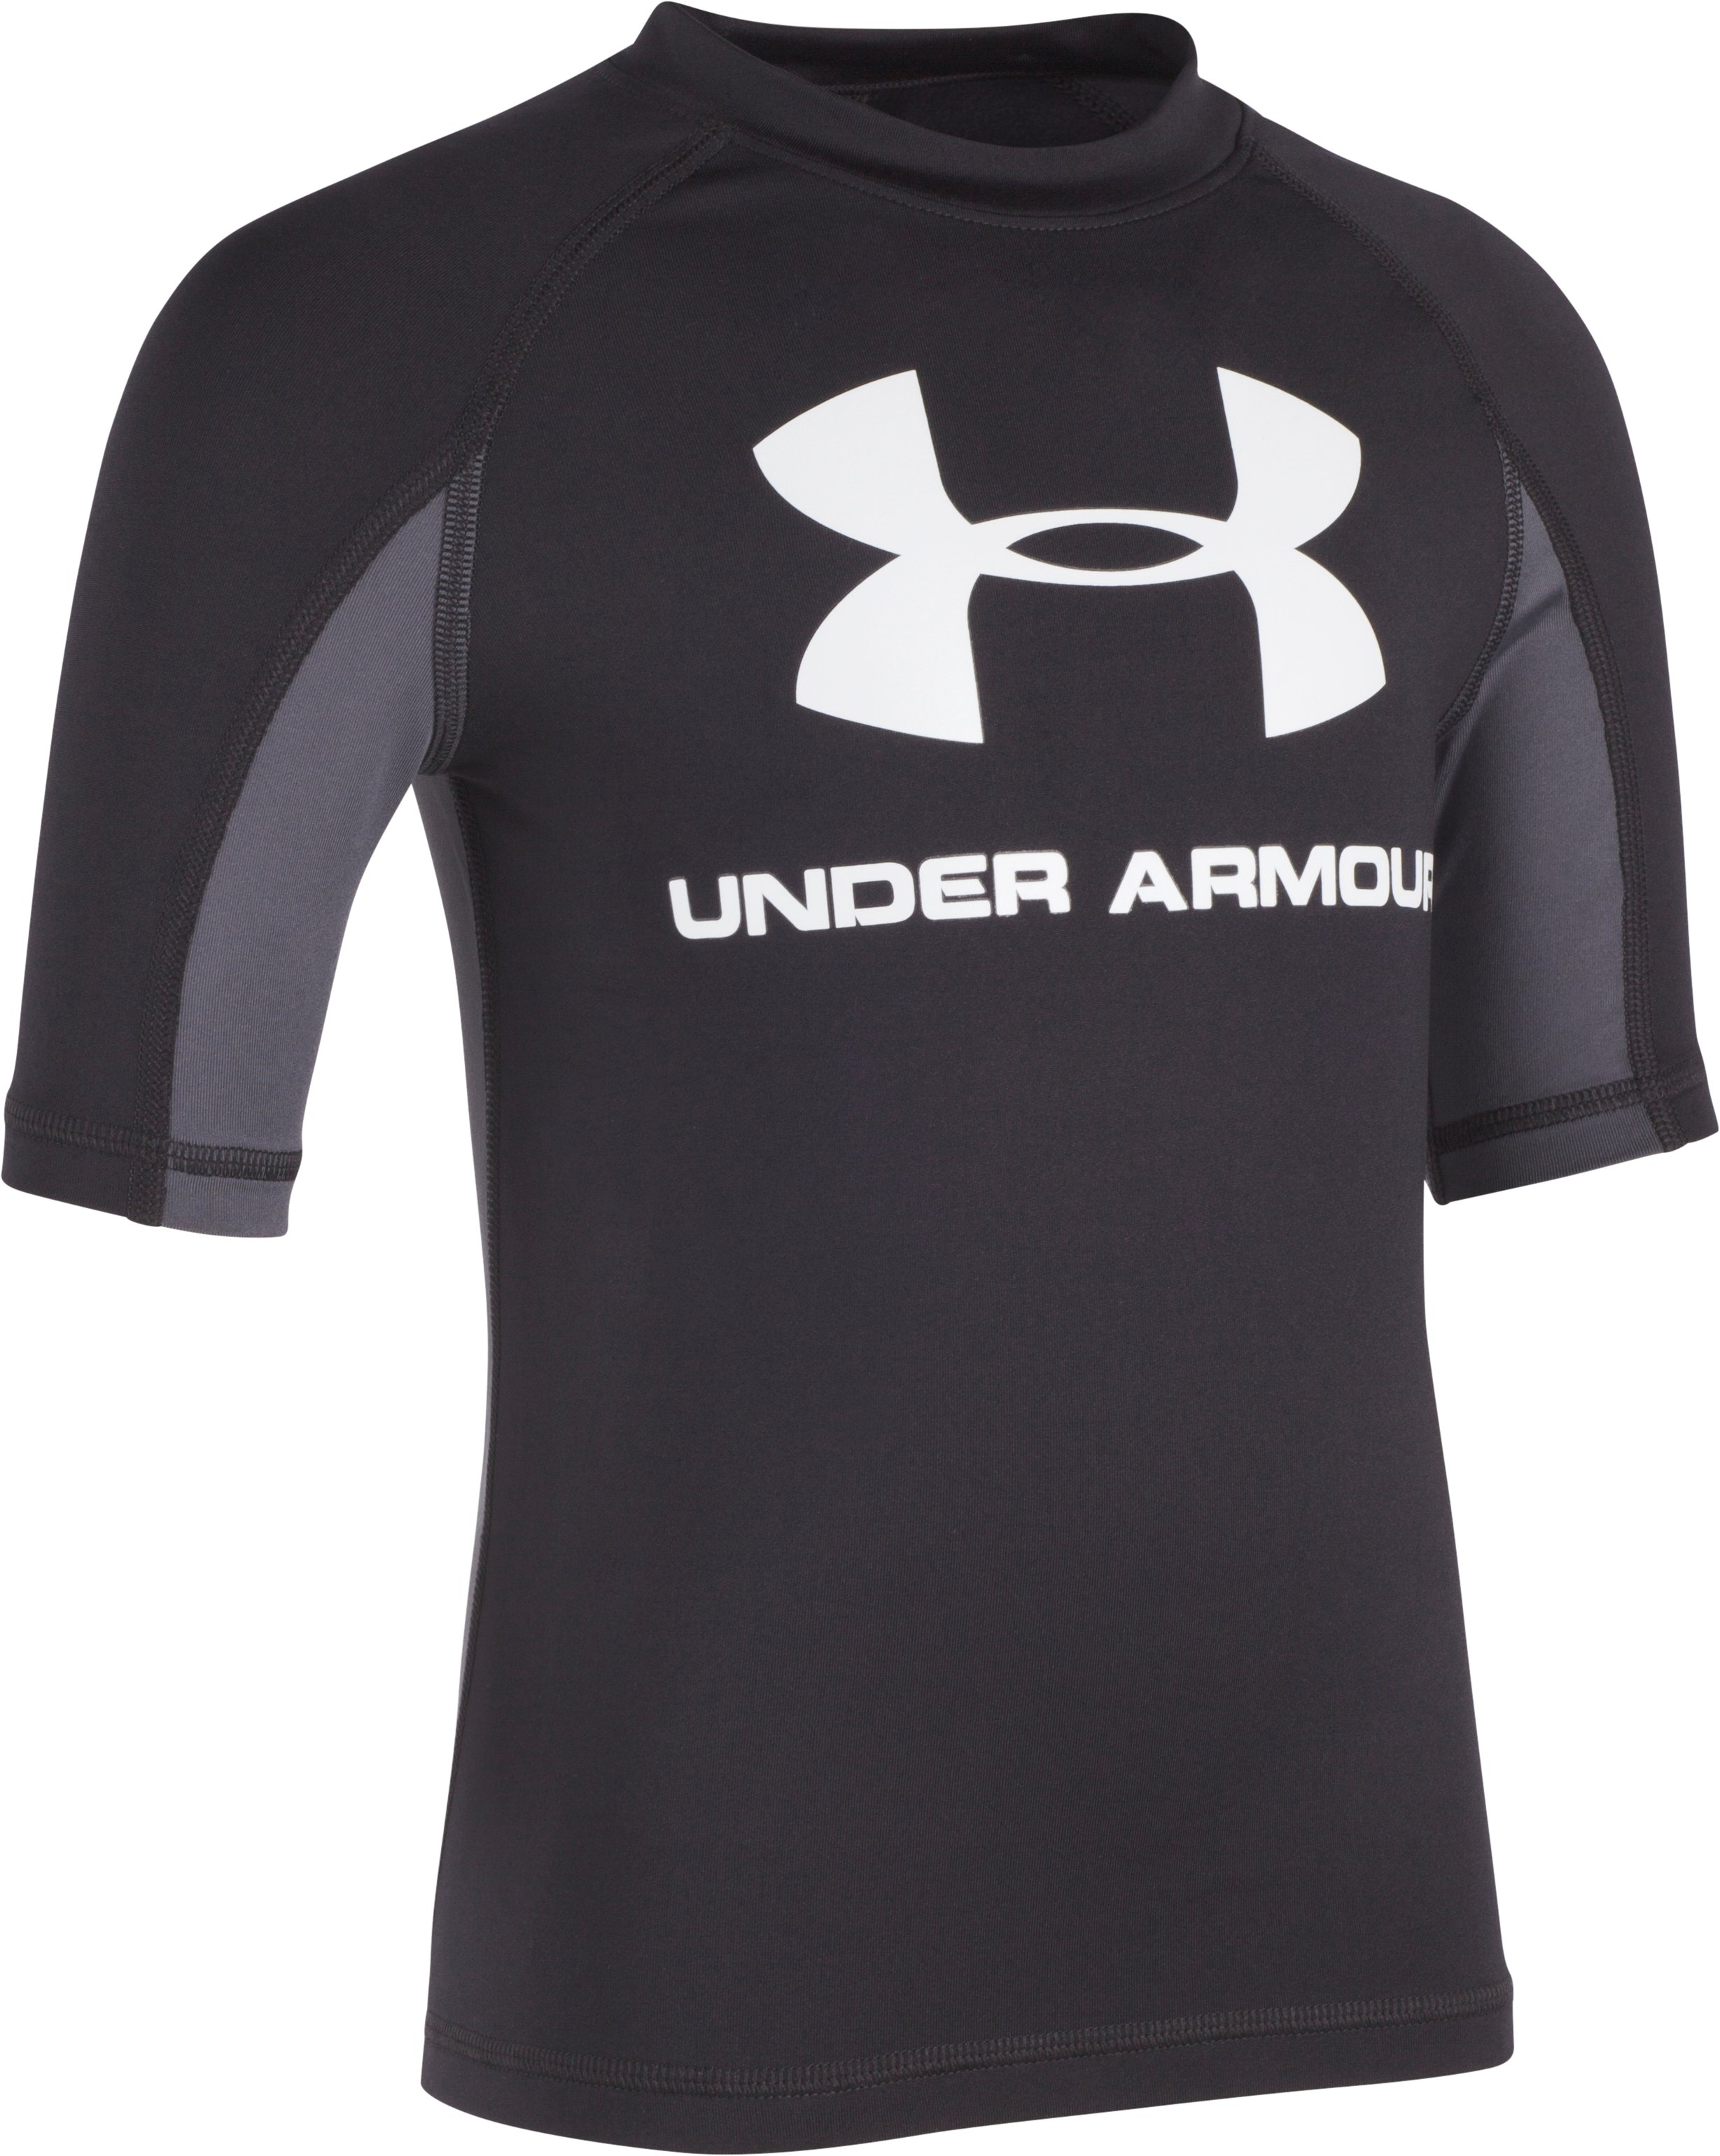 Boys' Pre-School UA Compression Rashguard Short Sleeve Shirt, Black